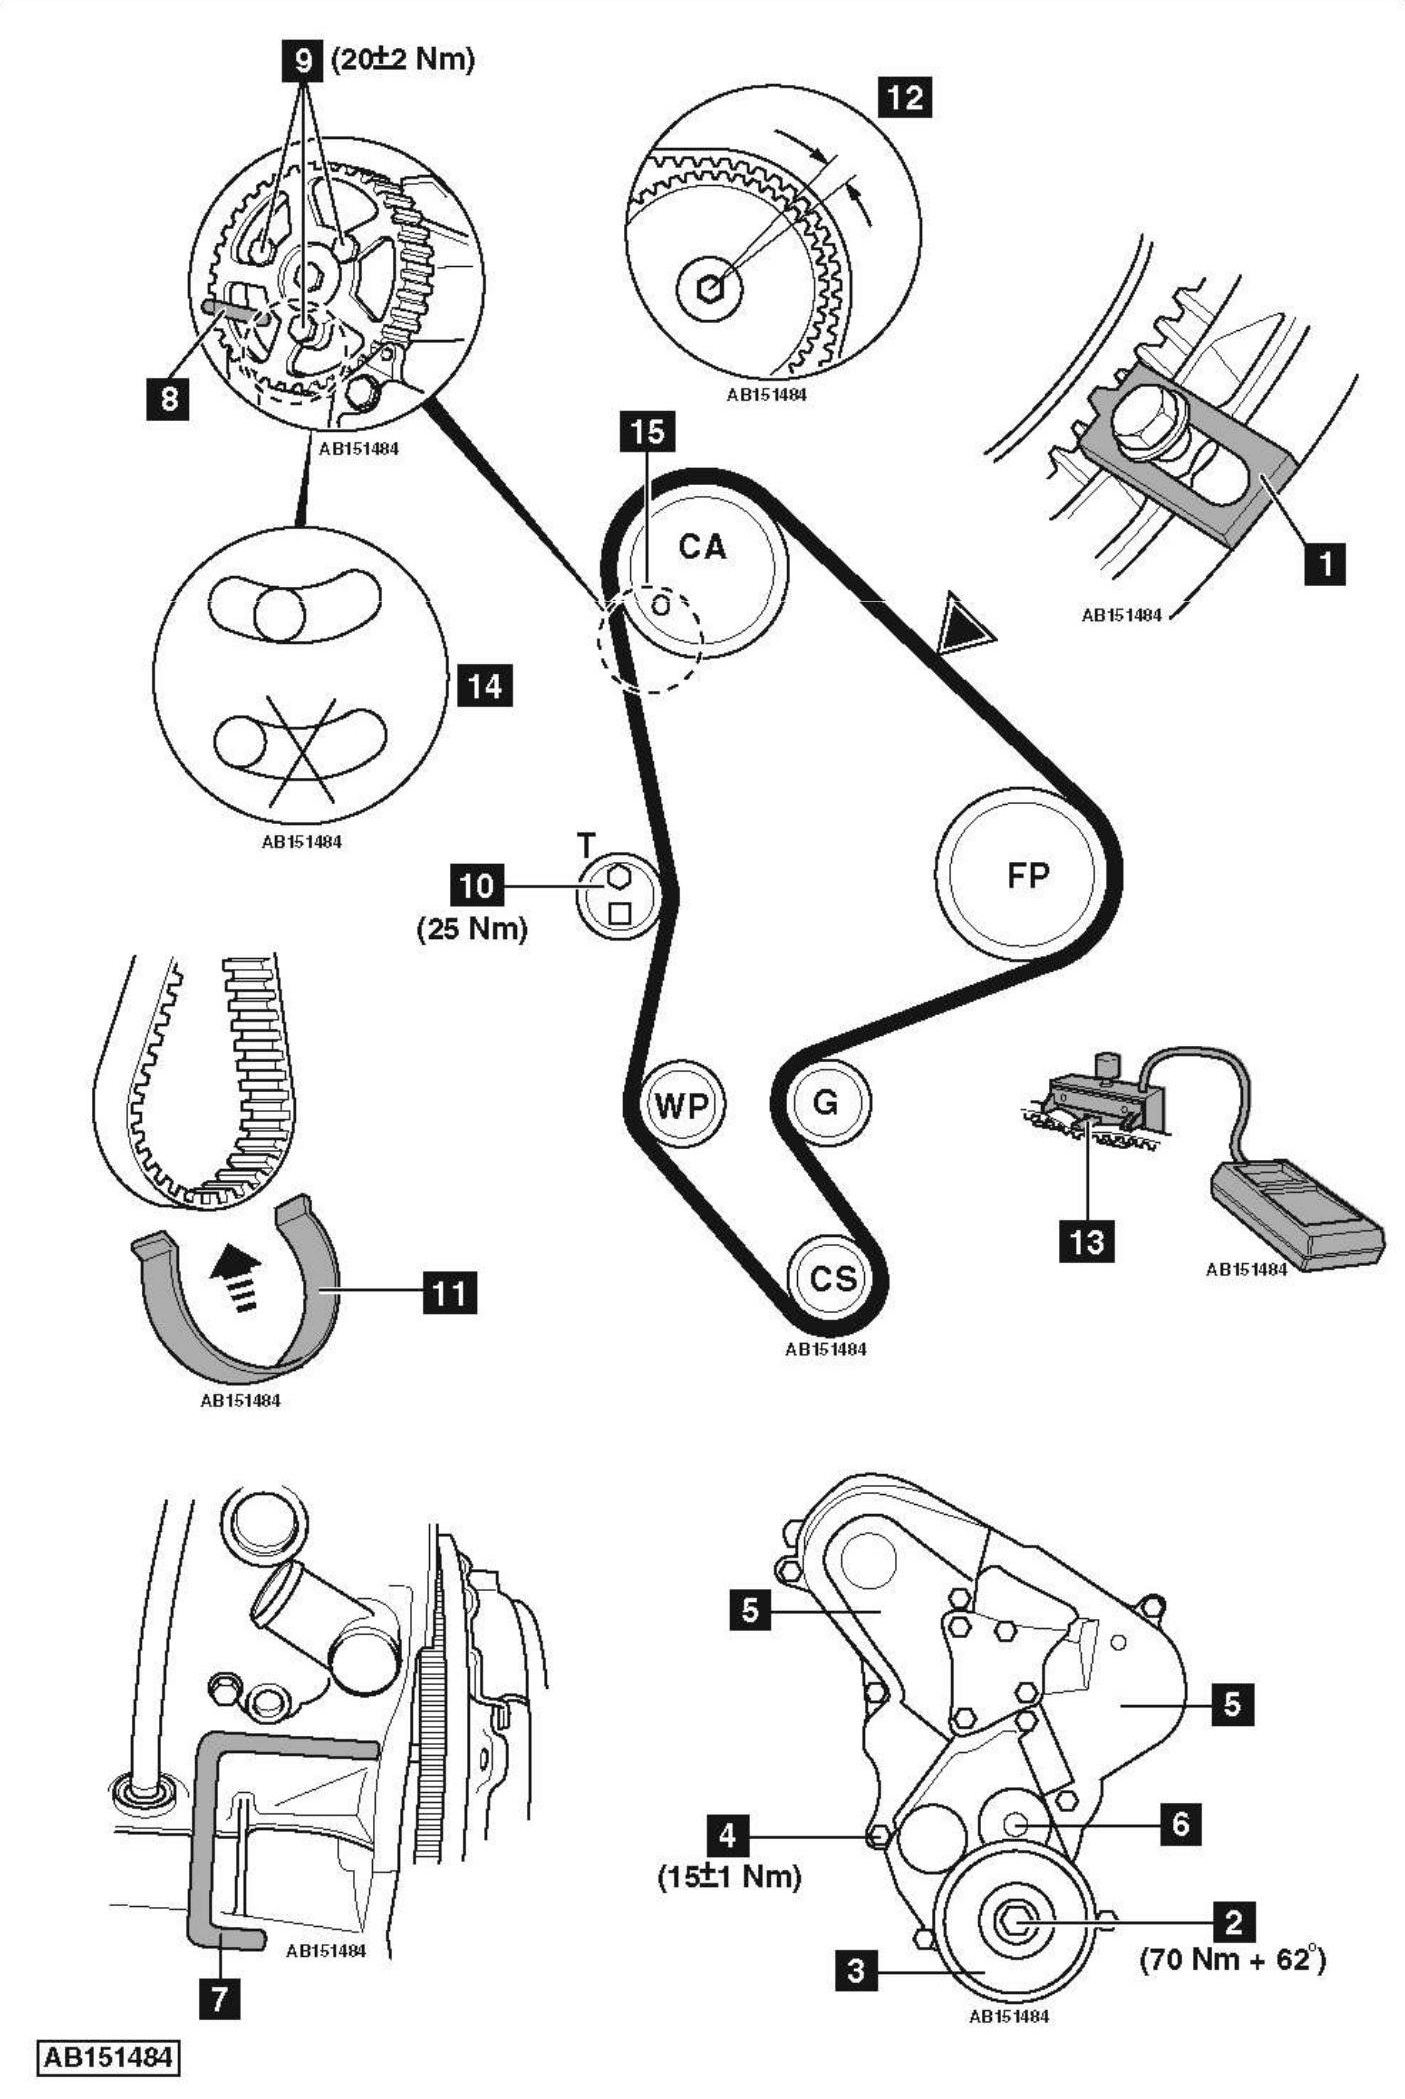 2008 Scion Xb Wiring Diagram. Scion. Wiring Diagram Images